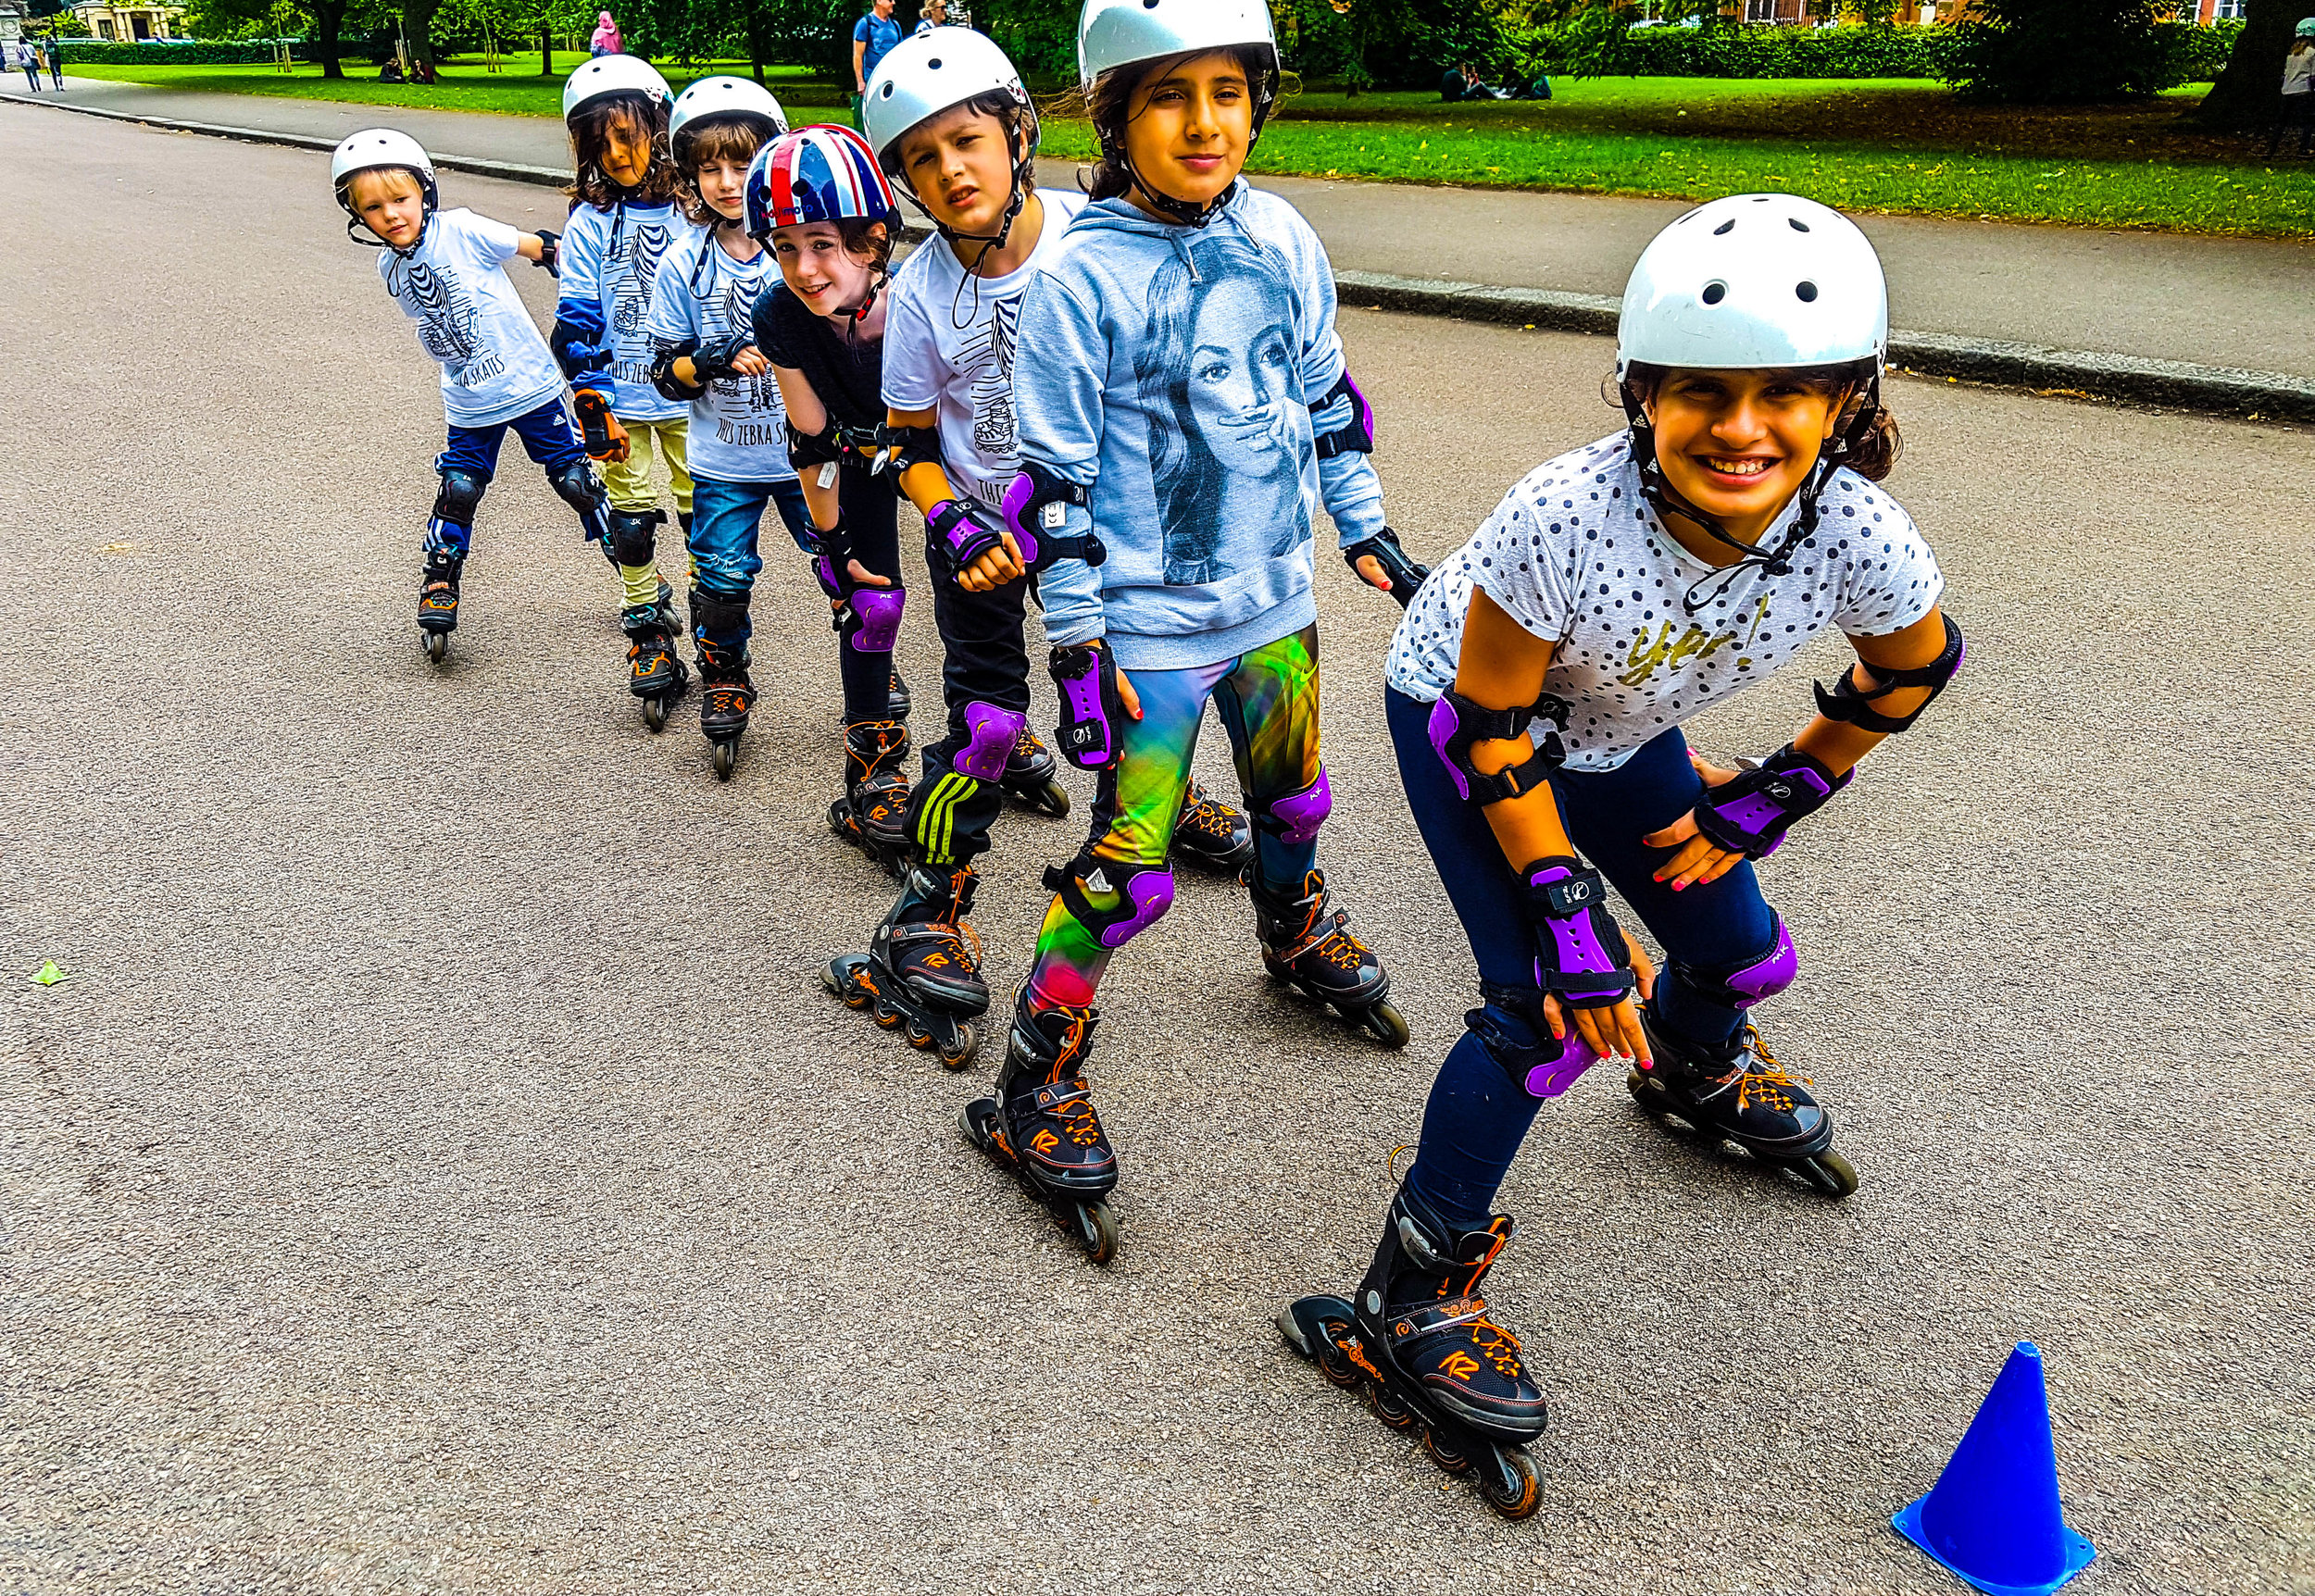 Zebra Skate  are a popular holiday workshop based in London, offering single day or five-day bookings of skateboarding and rollerblading day camps.